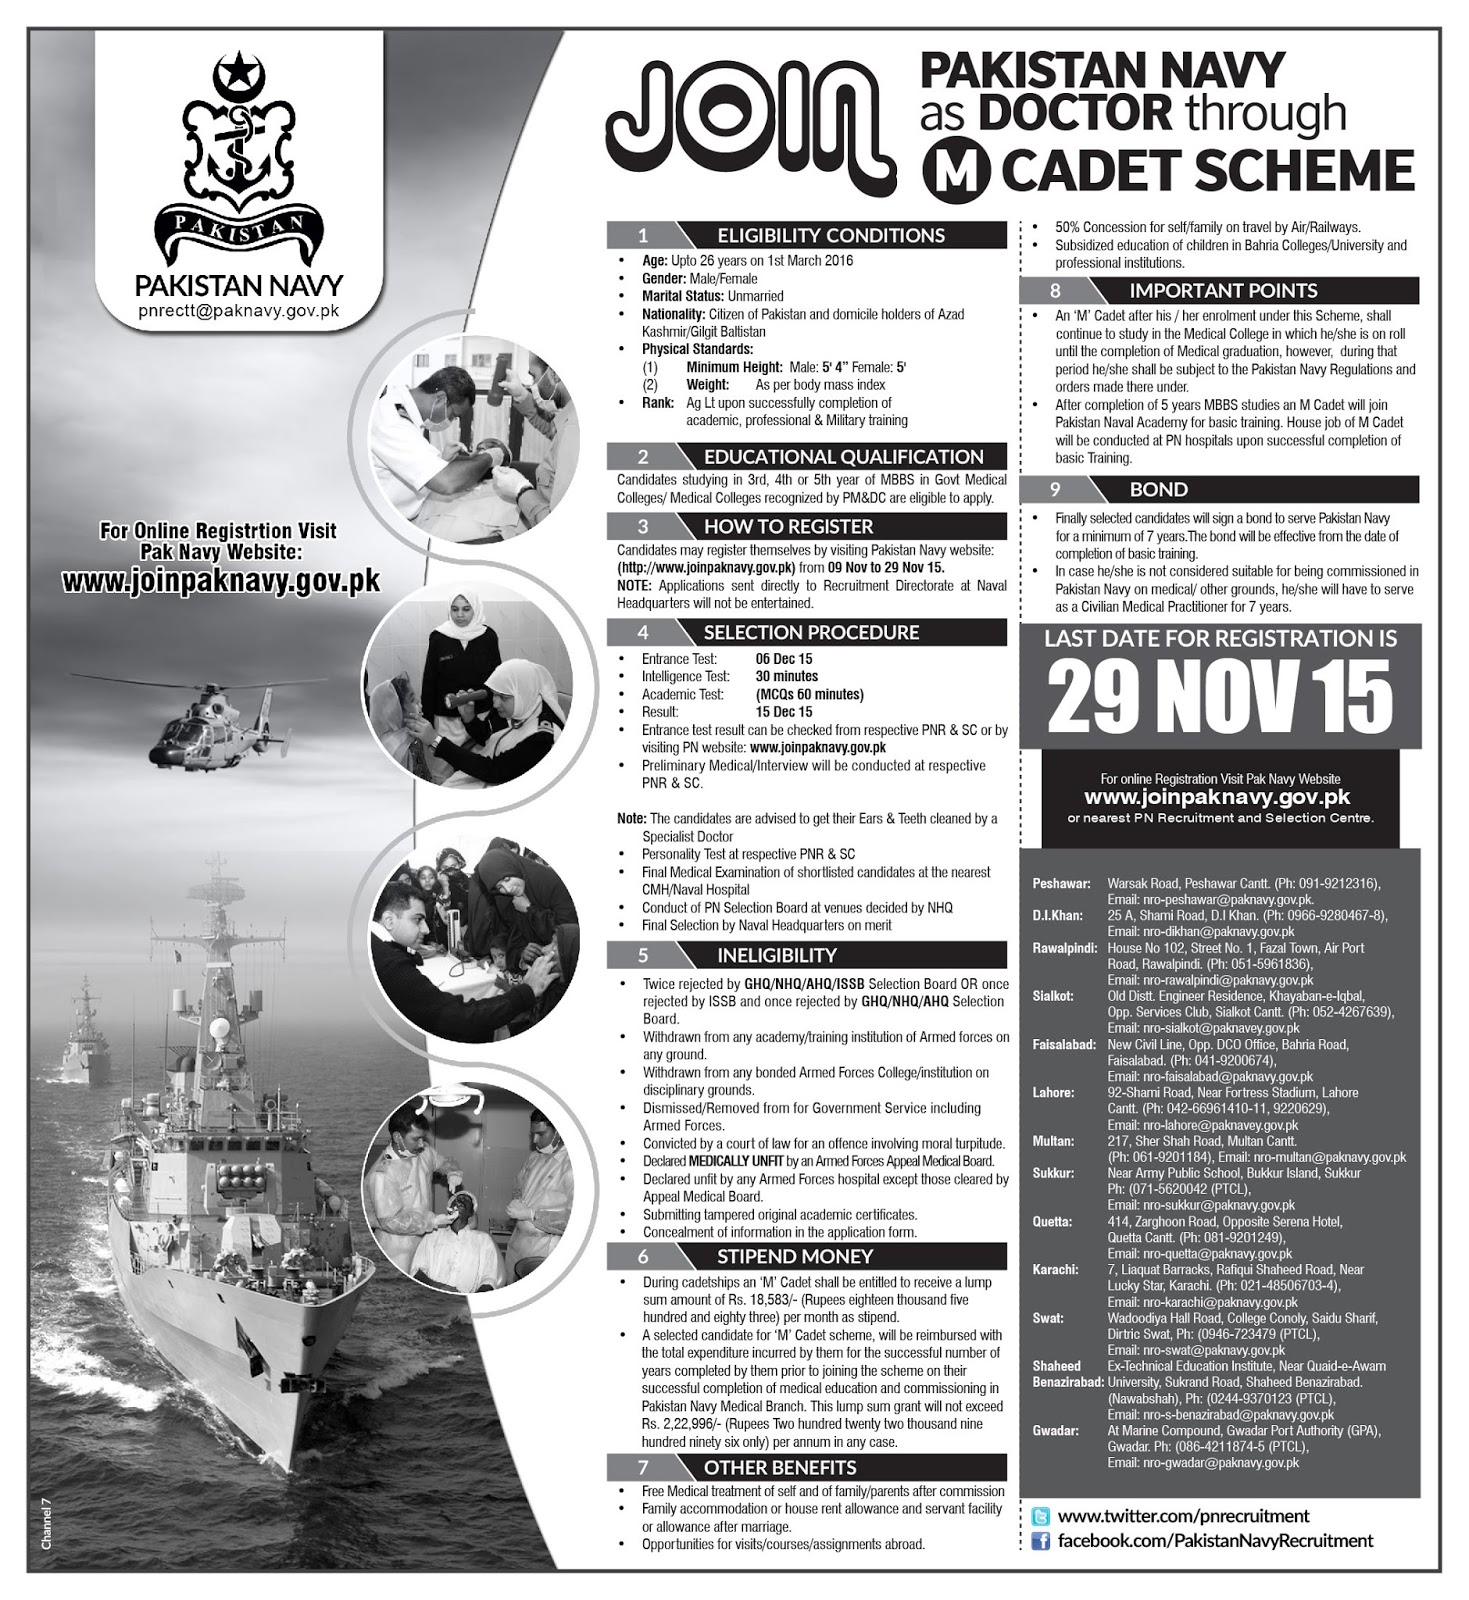 Calculate Bmi Sample Solution For How To Join Pakistan Navy As Doctor  Through M Cadet Scheme